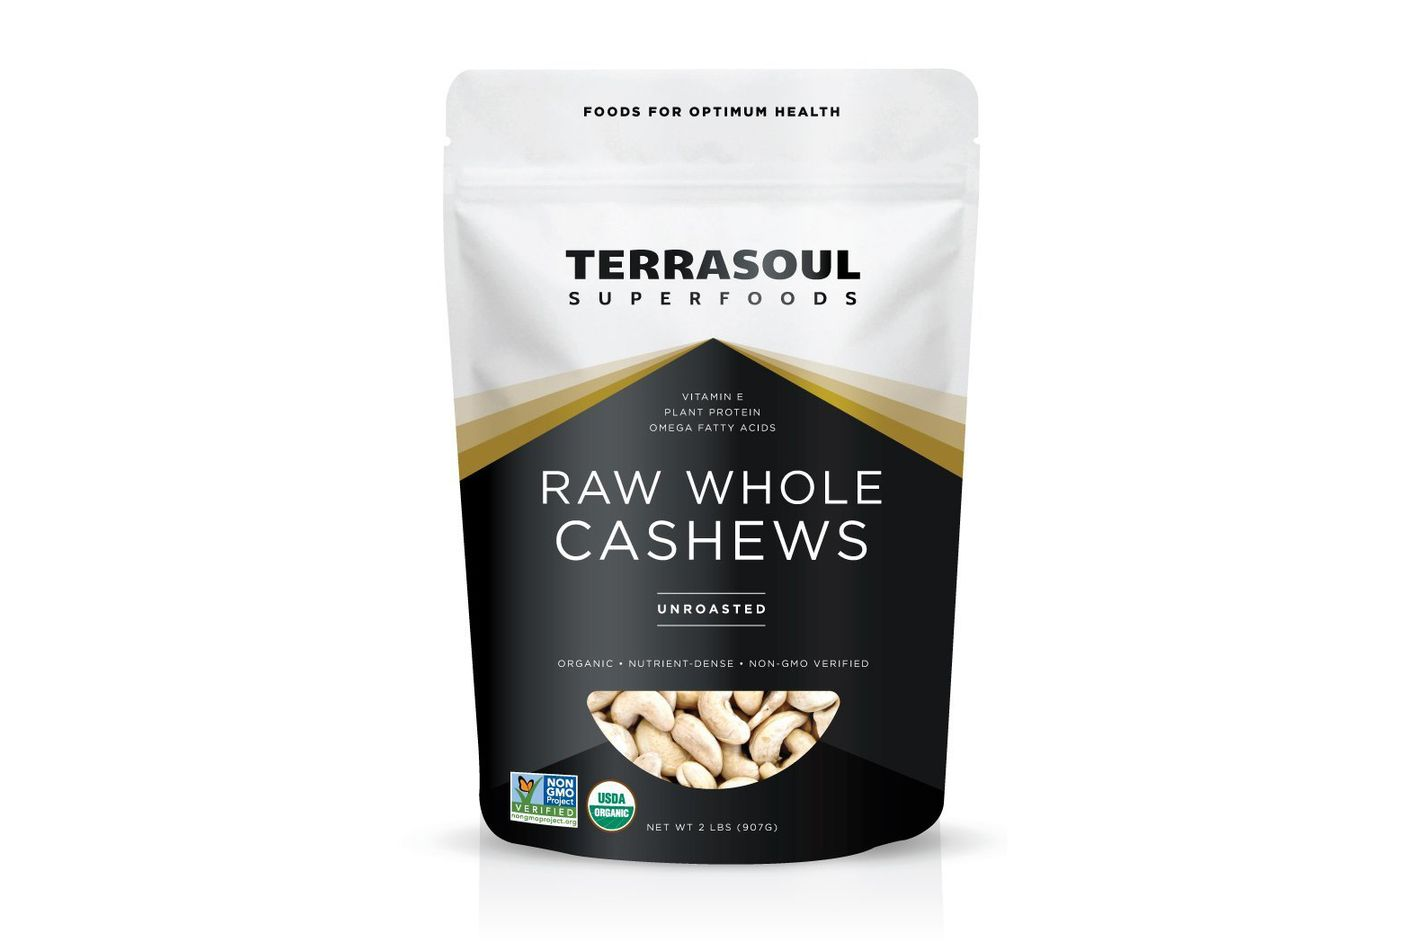 Terrasoul Superfoods Organic Whole Cashews